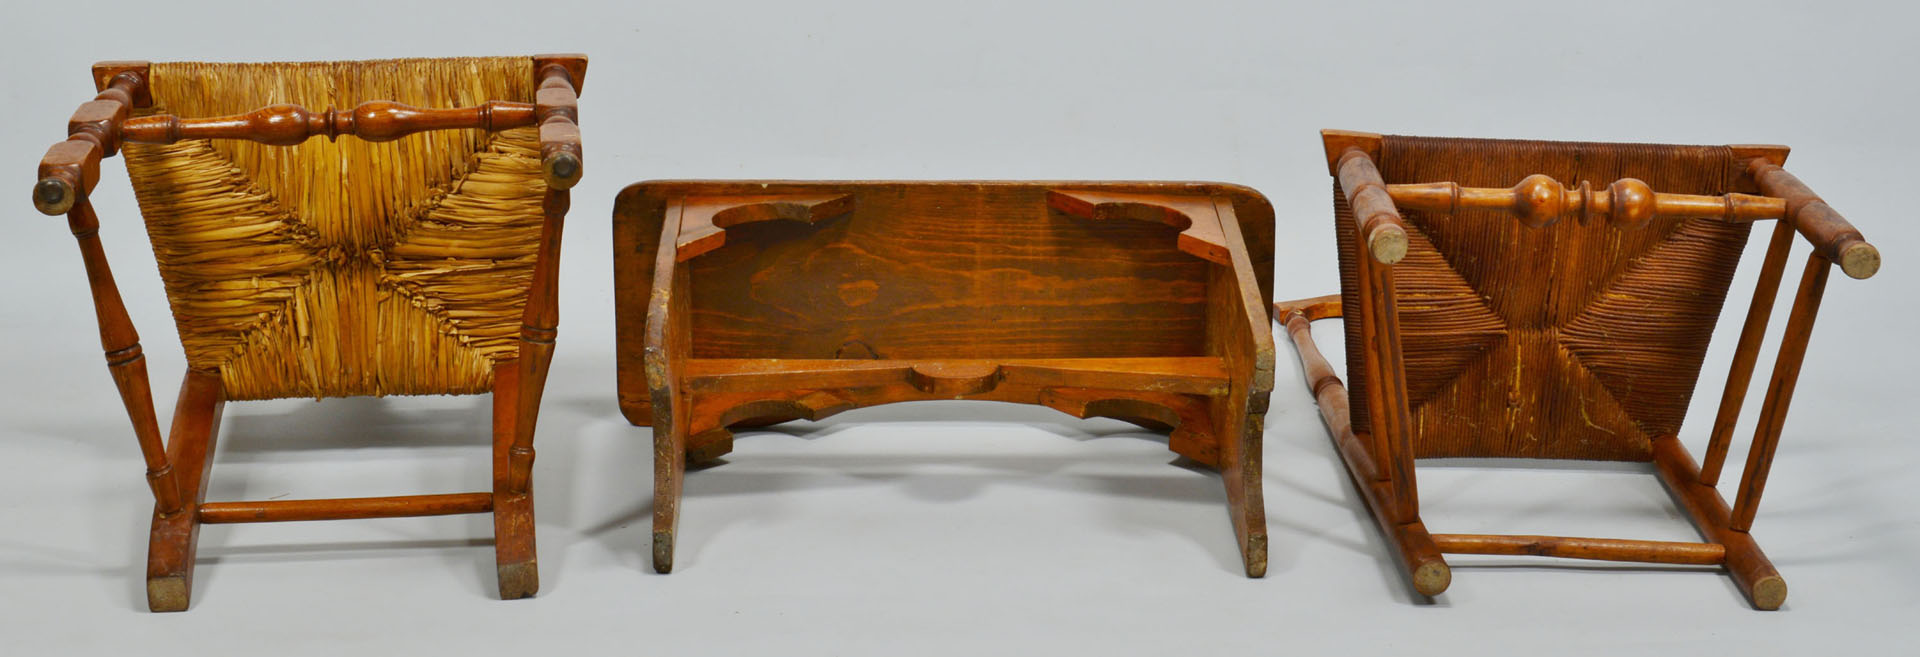 Lot 341: 2 Queen Anne Chairs and Trestle Bench